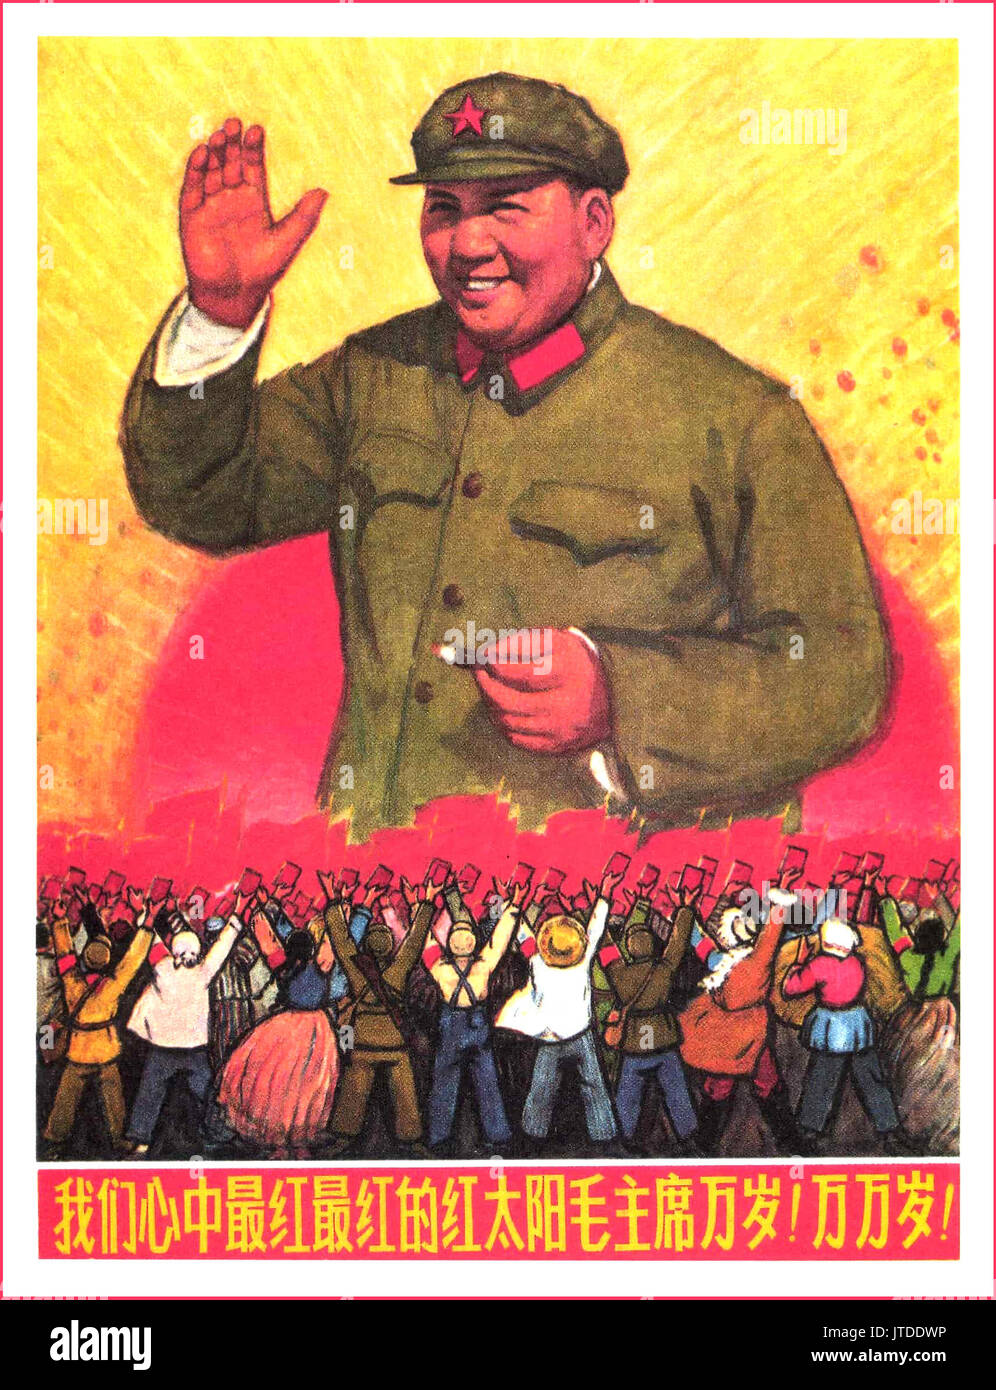 CHAIRMAN MAO VINTAGE POSTER Vintage Chinese political poster 'long live Chairman Mao the reddest sun in our hearts'' 1960's vintage political Chinese propaganda poster with adoring crowds holding aloft his little red book - Stock Image